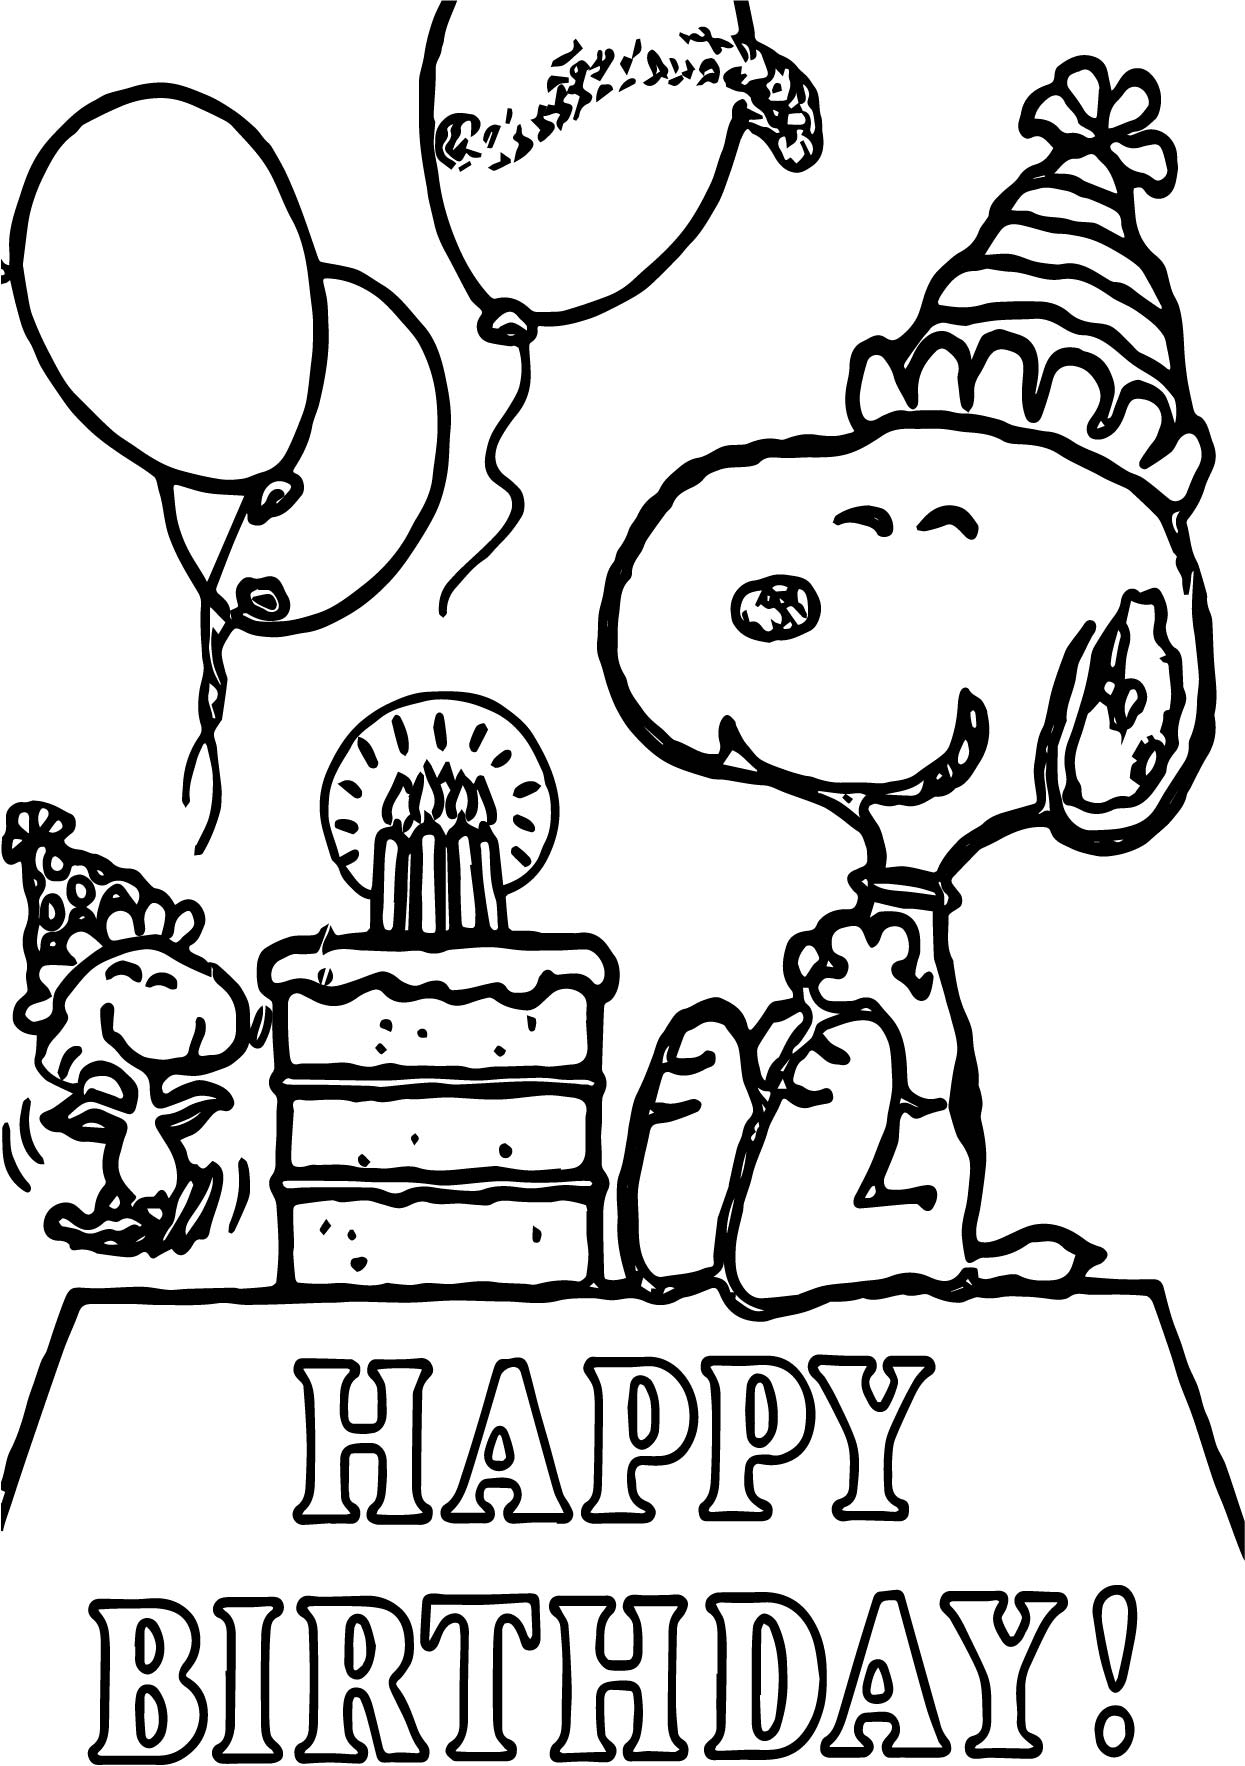 snoopy birthday coloring pages ; snoopy-coloring-pages-birthday-on-peanuts-characters-coloring-pages-adewa-d